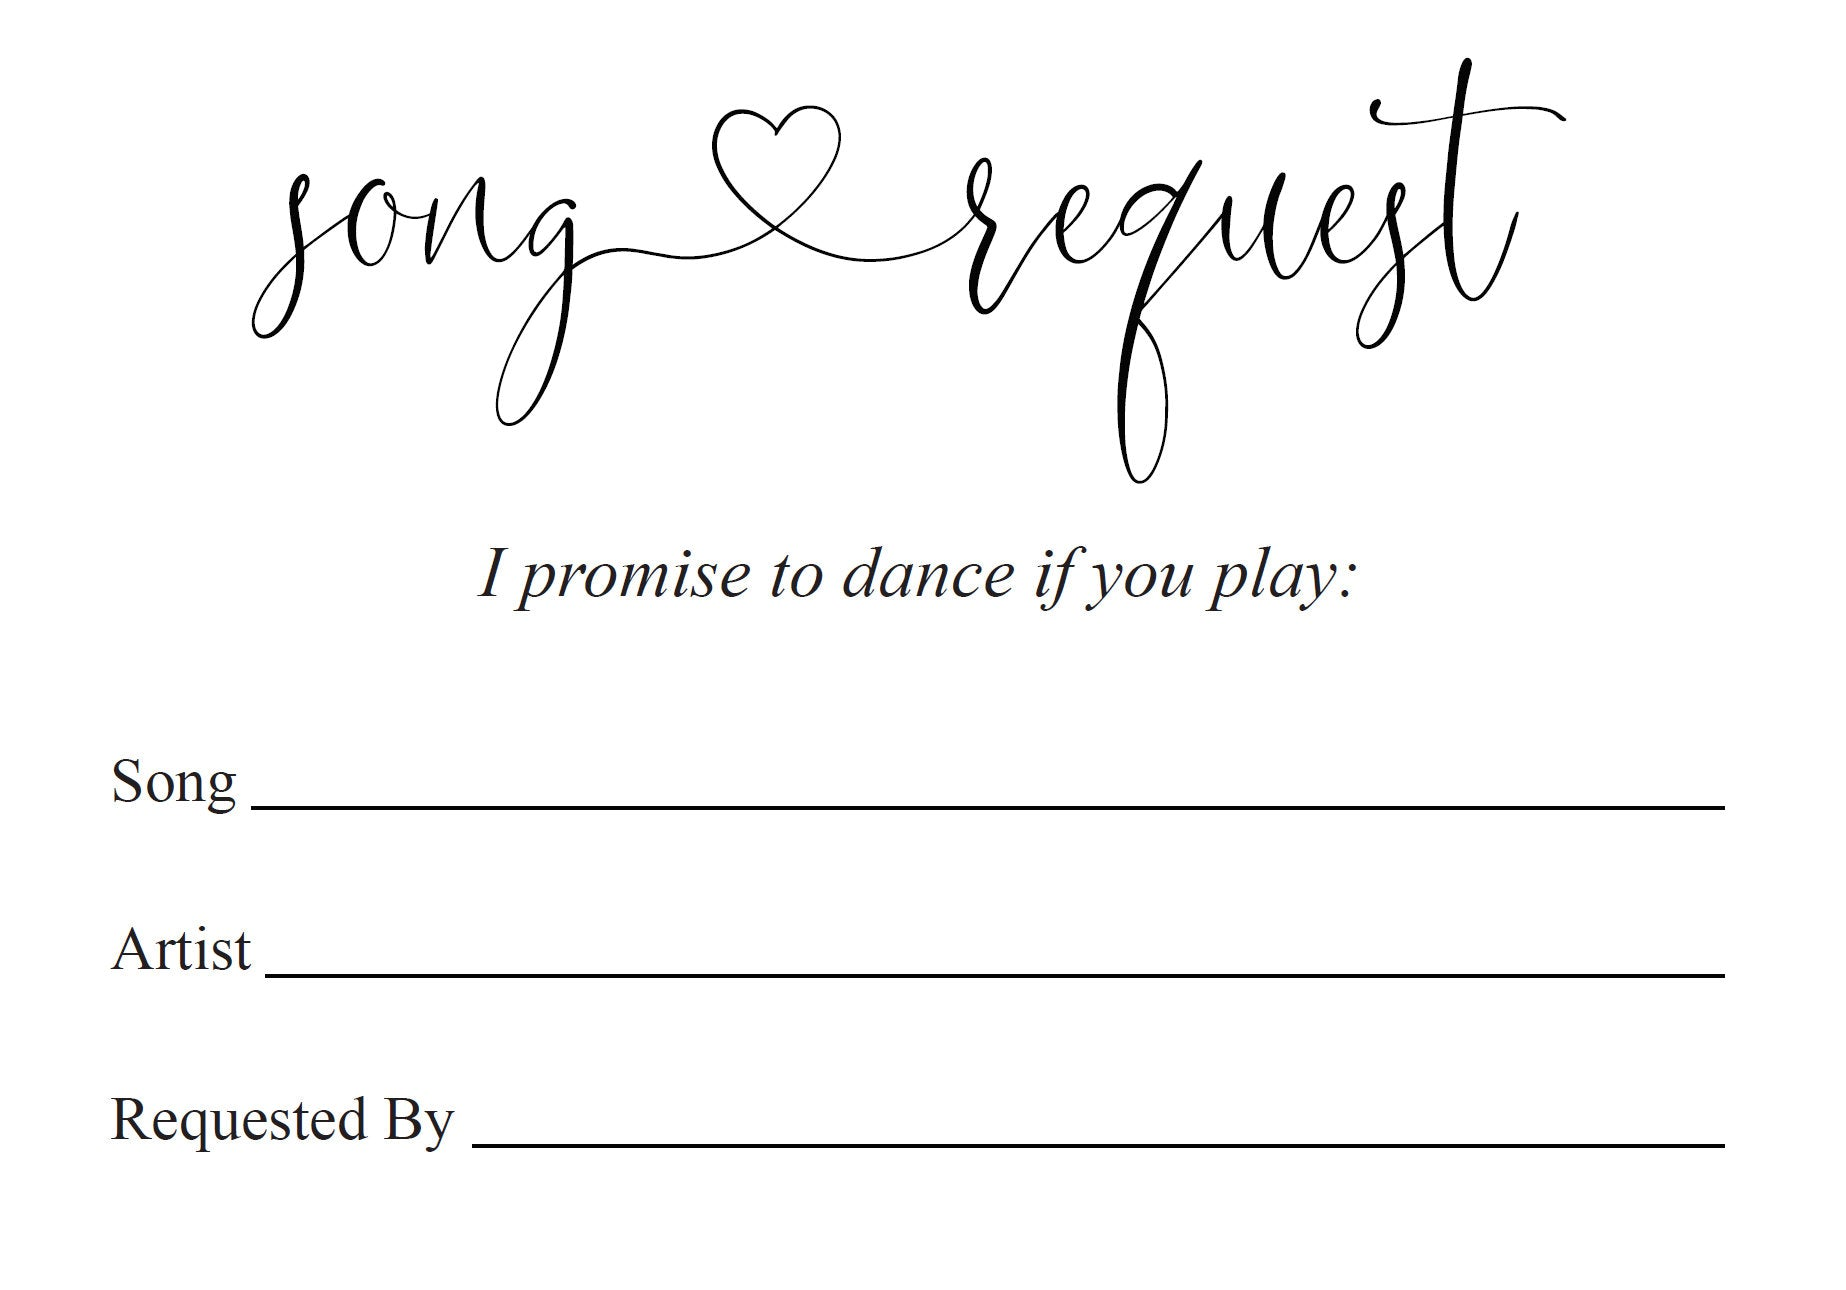 Let's dance card, Song Request Insert Card Template, Dancing Card, Dance Card, RSVP, Wedding Song Request, Rustic  - Heather